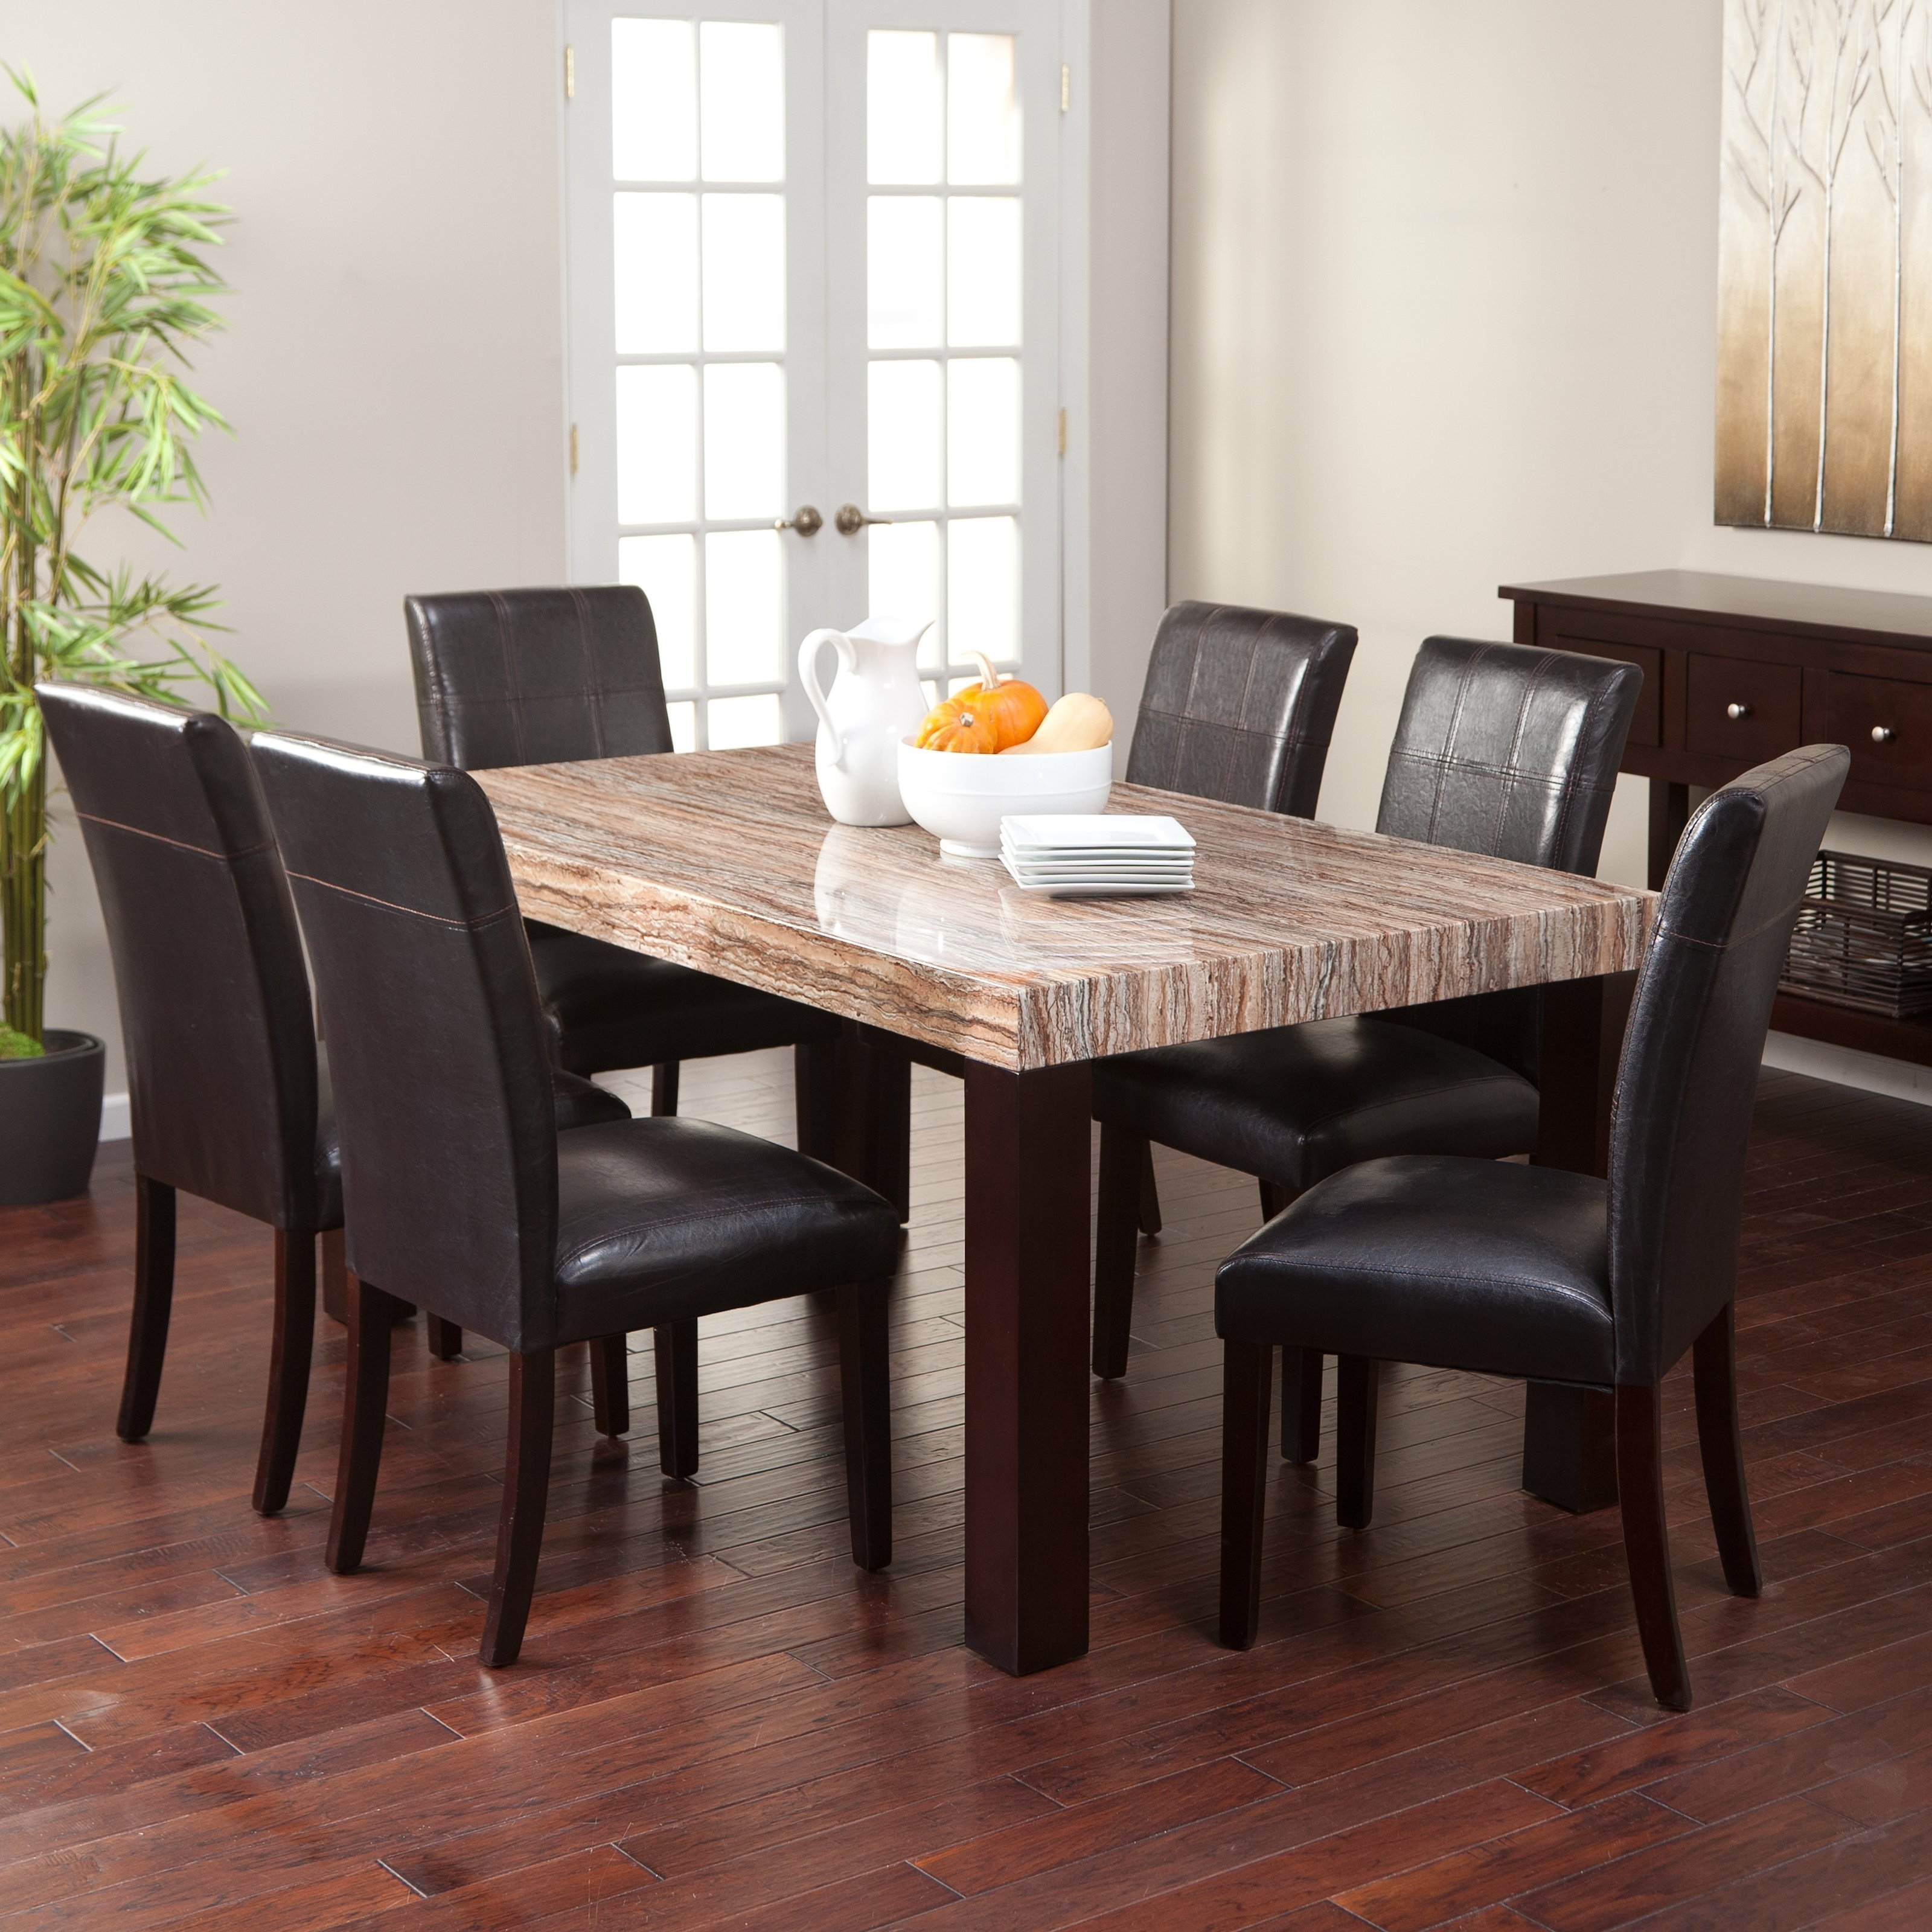 Most Recently Released Norwood 7 Piece Rectangular Extension Dining Sets With Bench, Host & Side Chairs Regarding O – Itfoxy (Gallery 20 of 25)